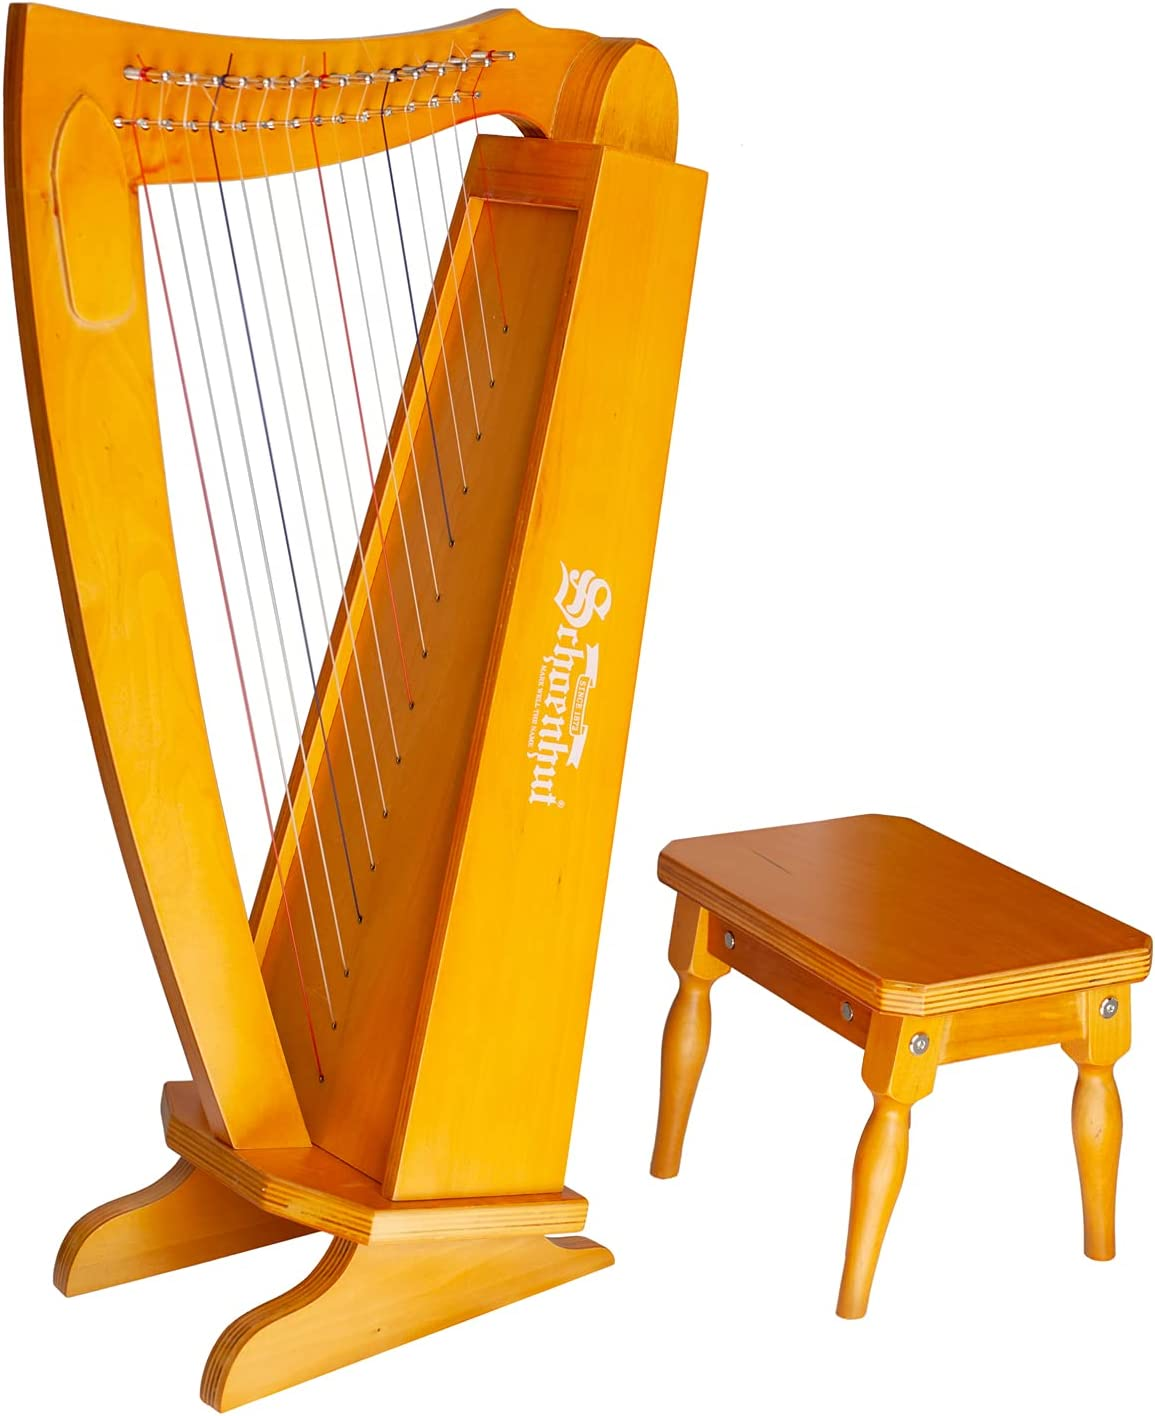 Schoenhut 15 String Lyre Harp - 27'' Stringed Musical Instruments with Harp Tuning Wrench - Instrument Lyre Learn to Play the Harp - Harp Instruments for Kids and Adults - Wooden Musical Instruments